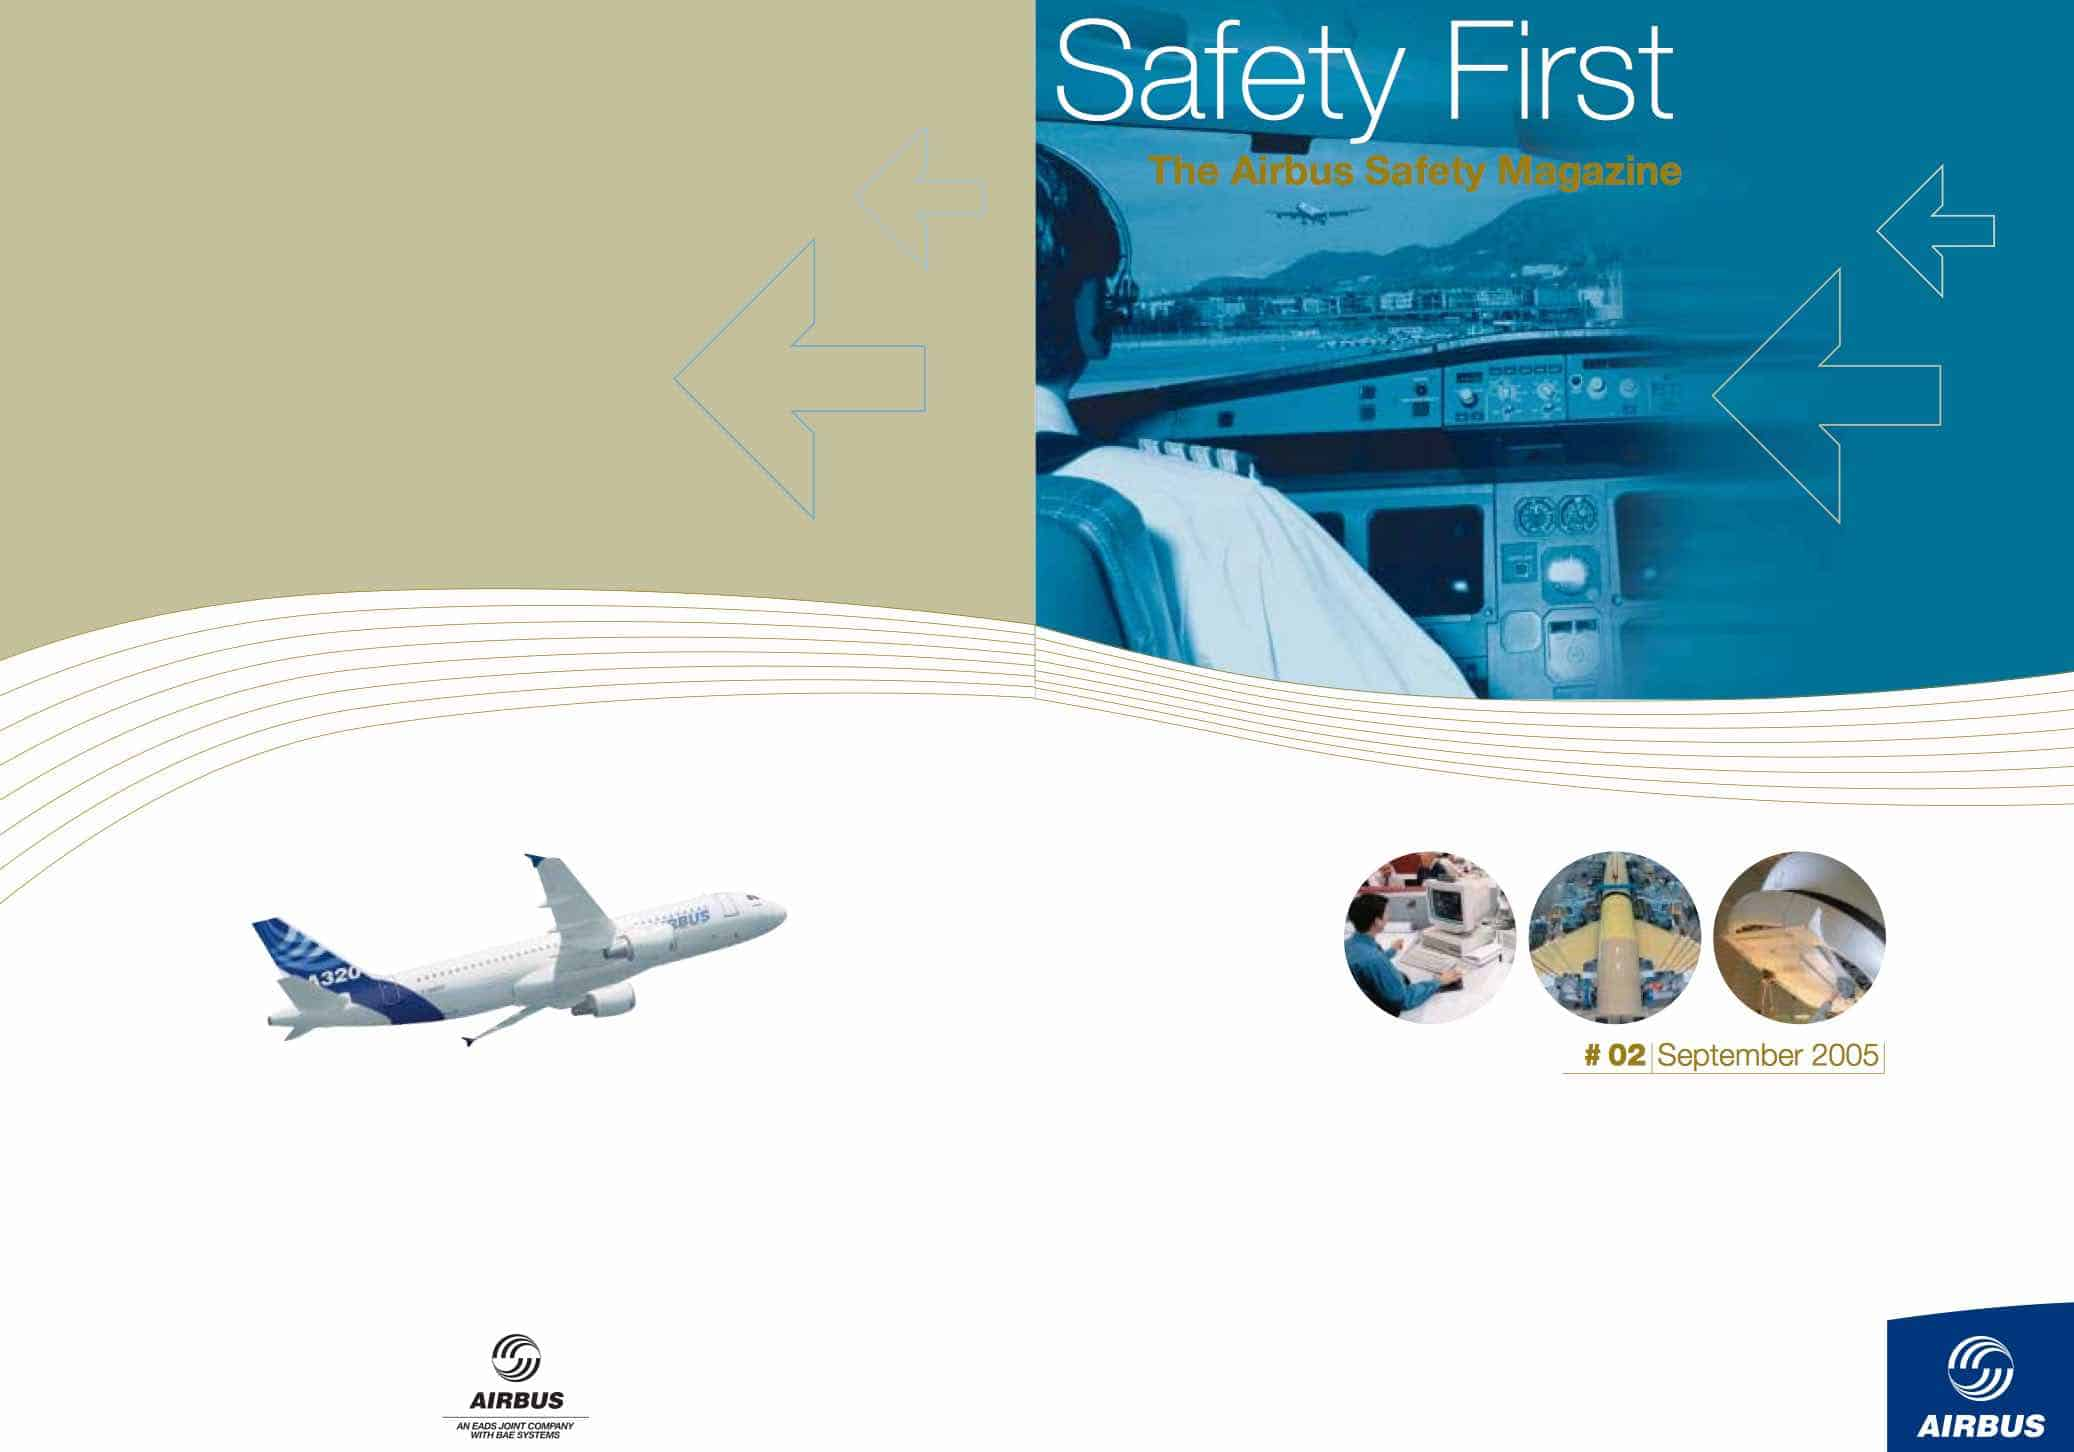 [Airbus] Safety Magazine_Safety First_02 / September 2005